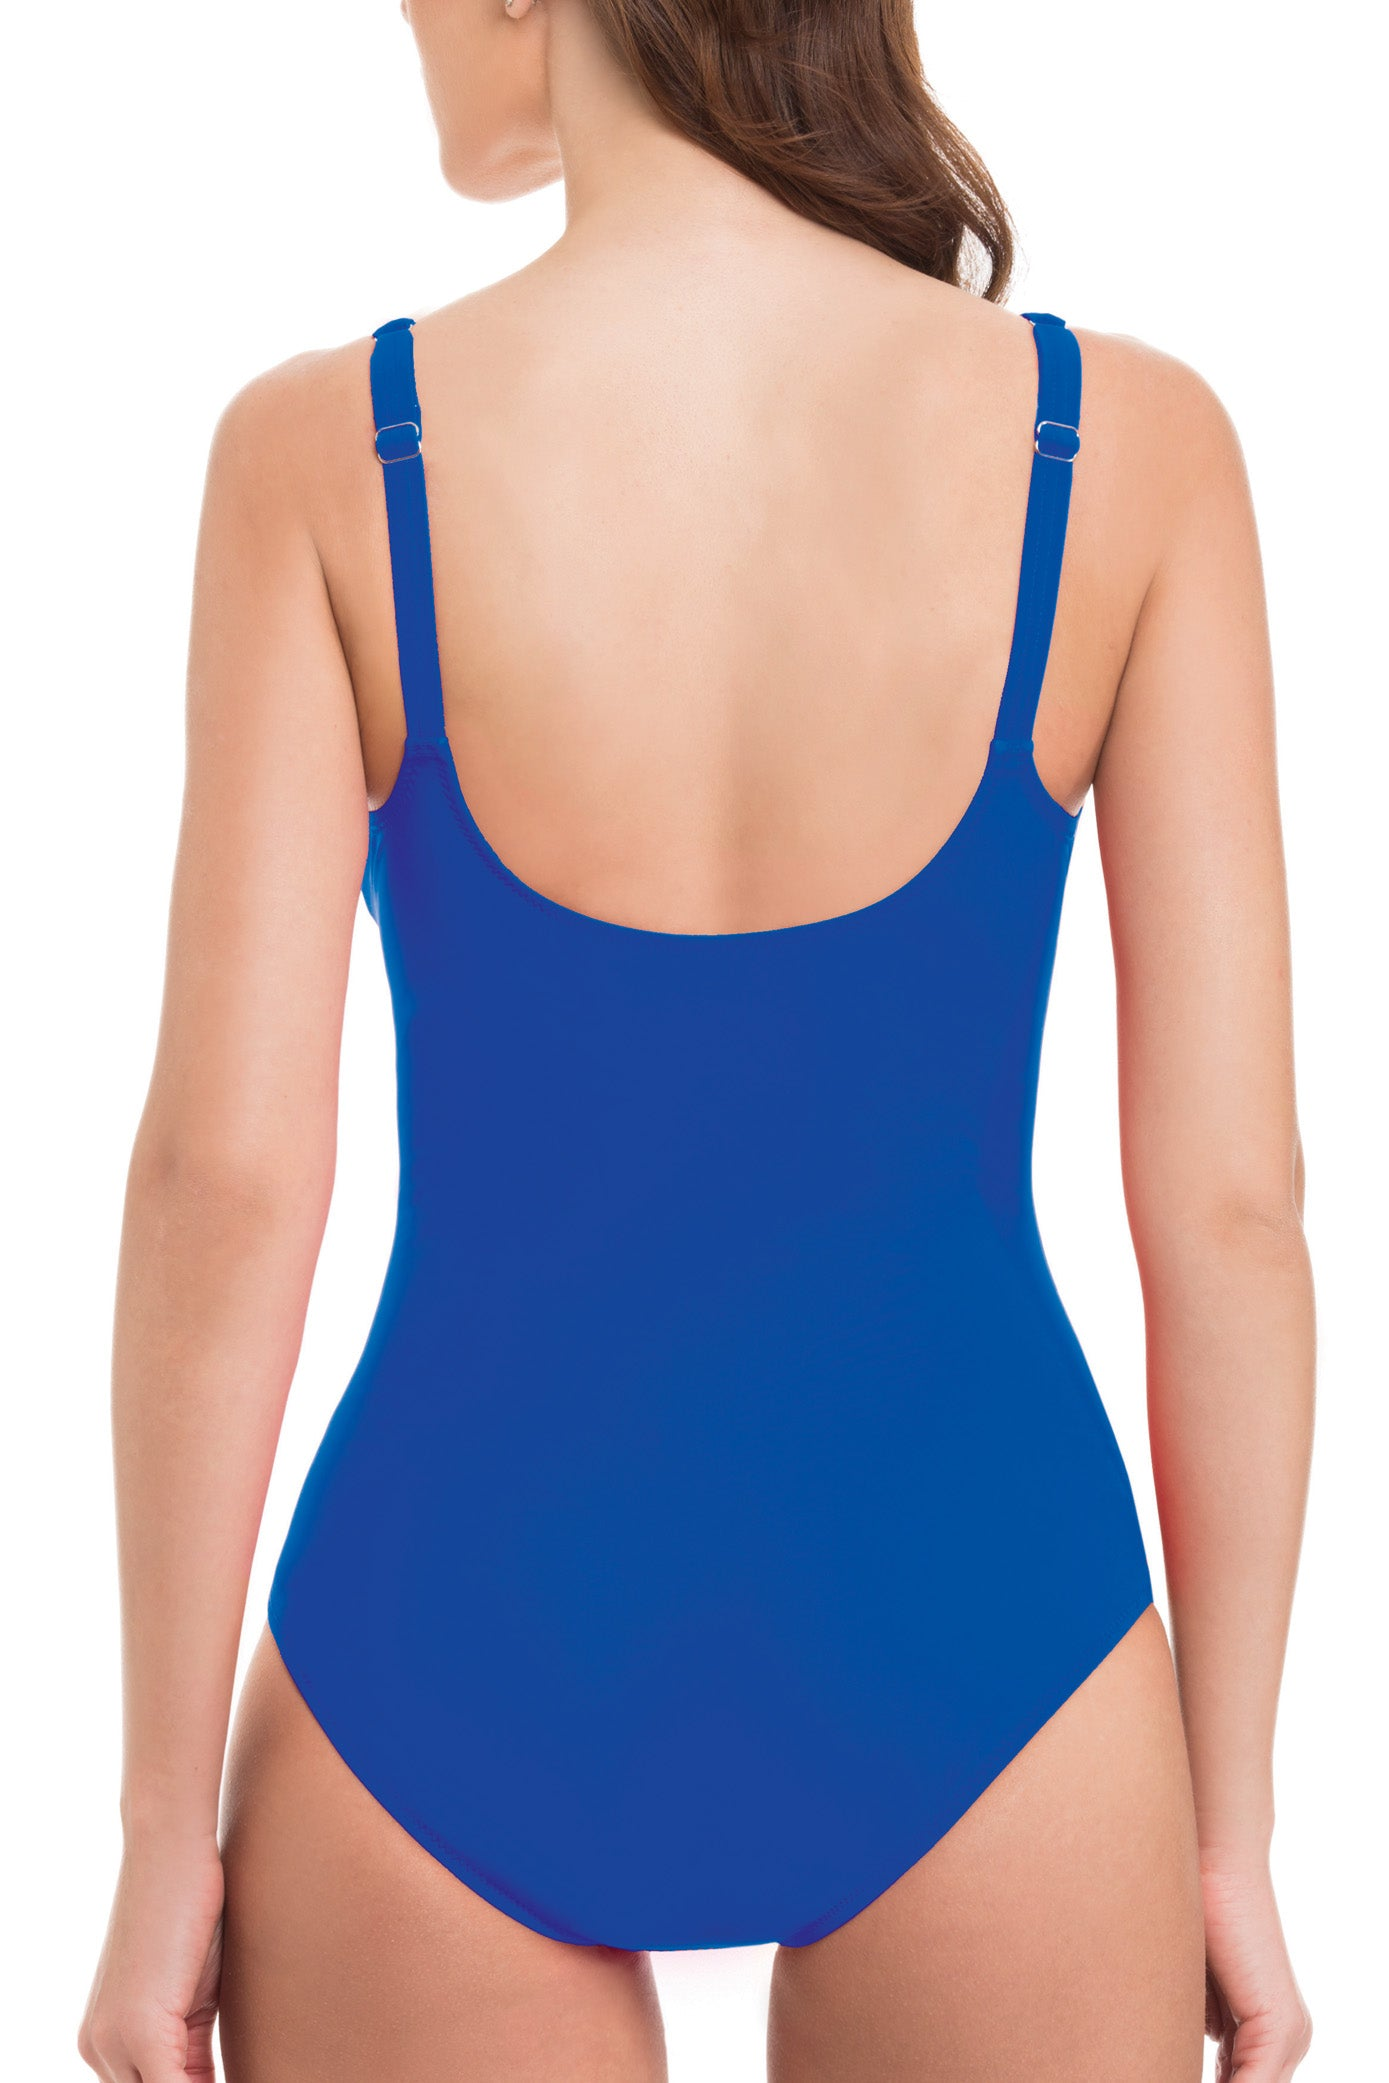 Scoop neck Adjustable over-the-shoulder straps Non-removable soft cups Ruched Tummy control panel Full bottom coverage Polyamide/elastane royal back view